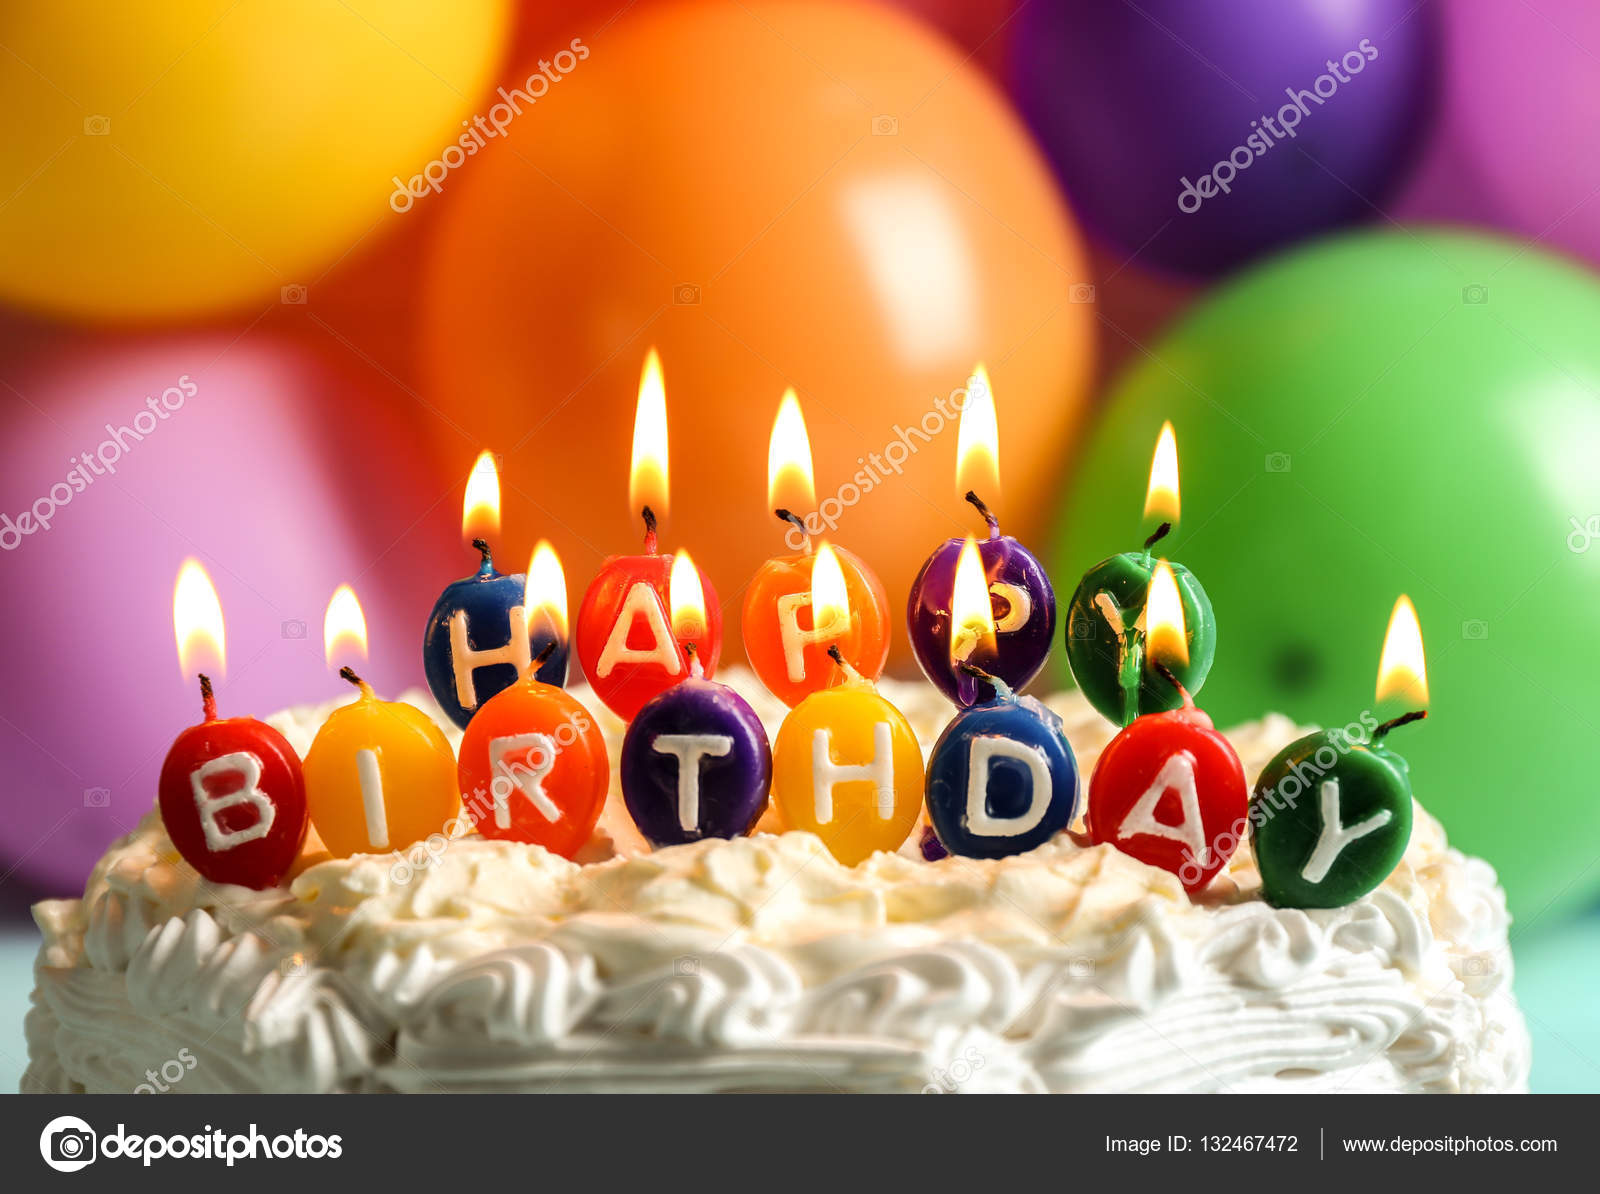 Stupendous Birthday Cake With Candles And Balloons Birthday Cake With Personalised Birthday Cards Veneteletsinfo